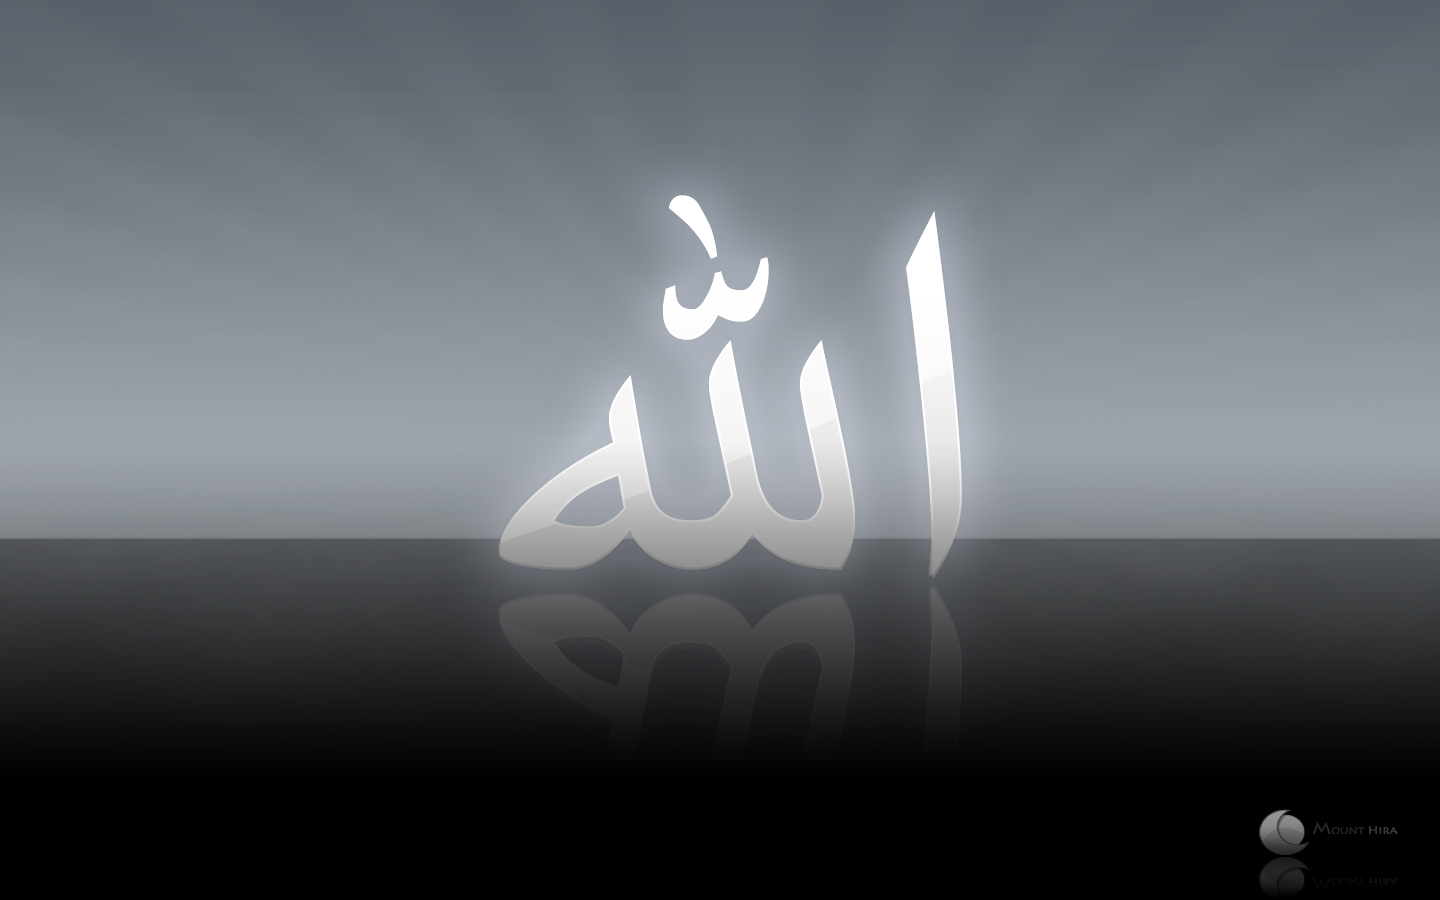 Hd wallpaper name - Hd Islamic Wallpapers 2012 Wide Screen Edition Allah Name Wallpapers